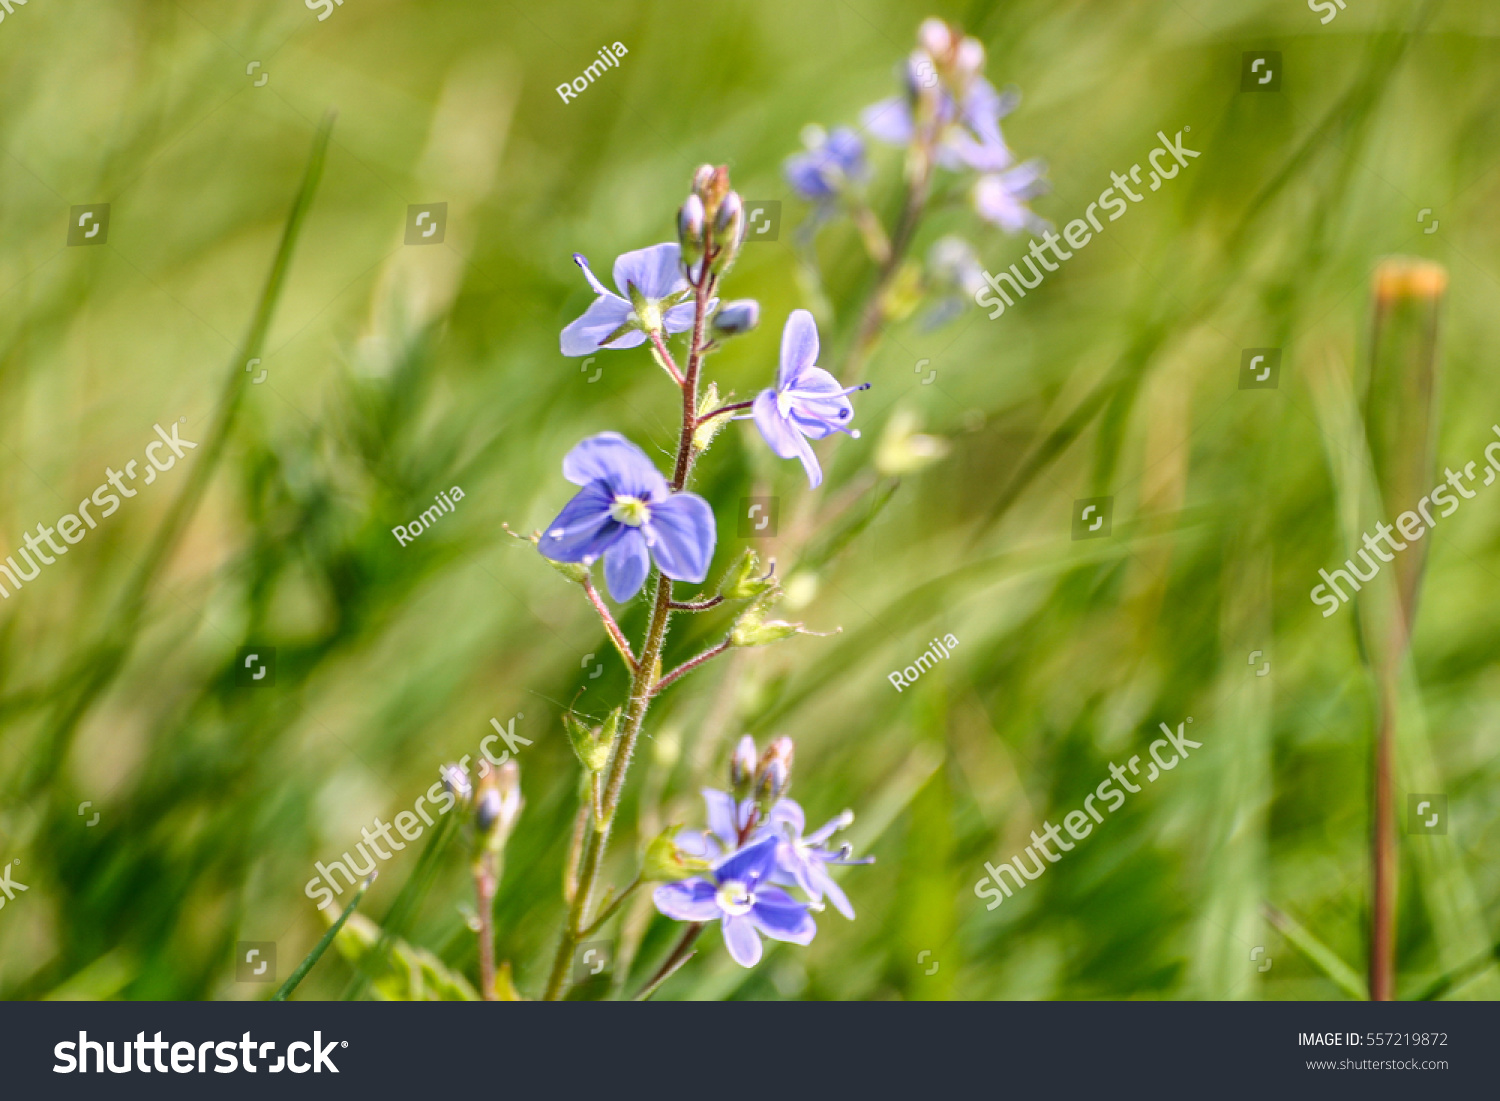 Beautiful Small Blue Flowers In The Grass In Spring Ez Canvas